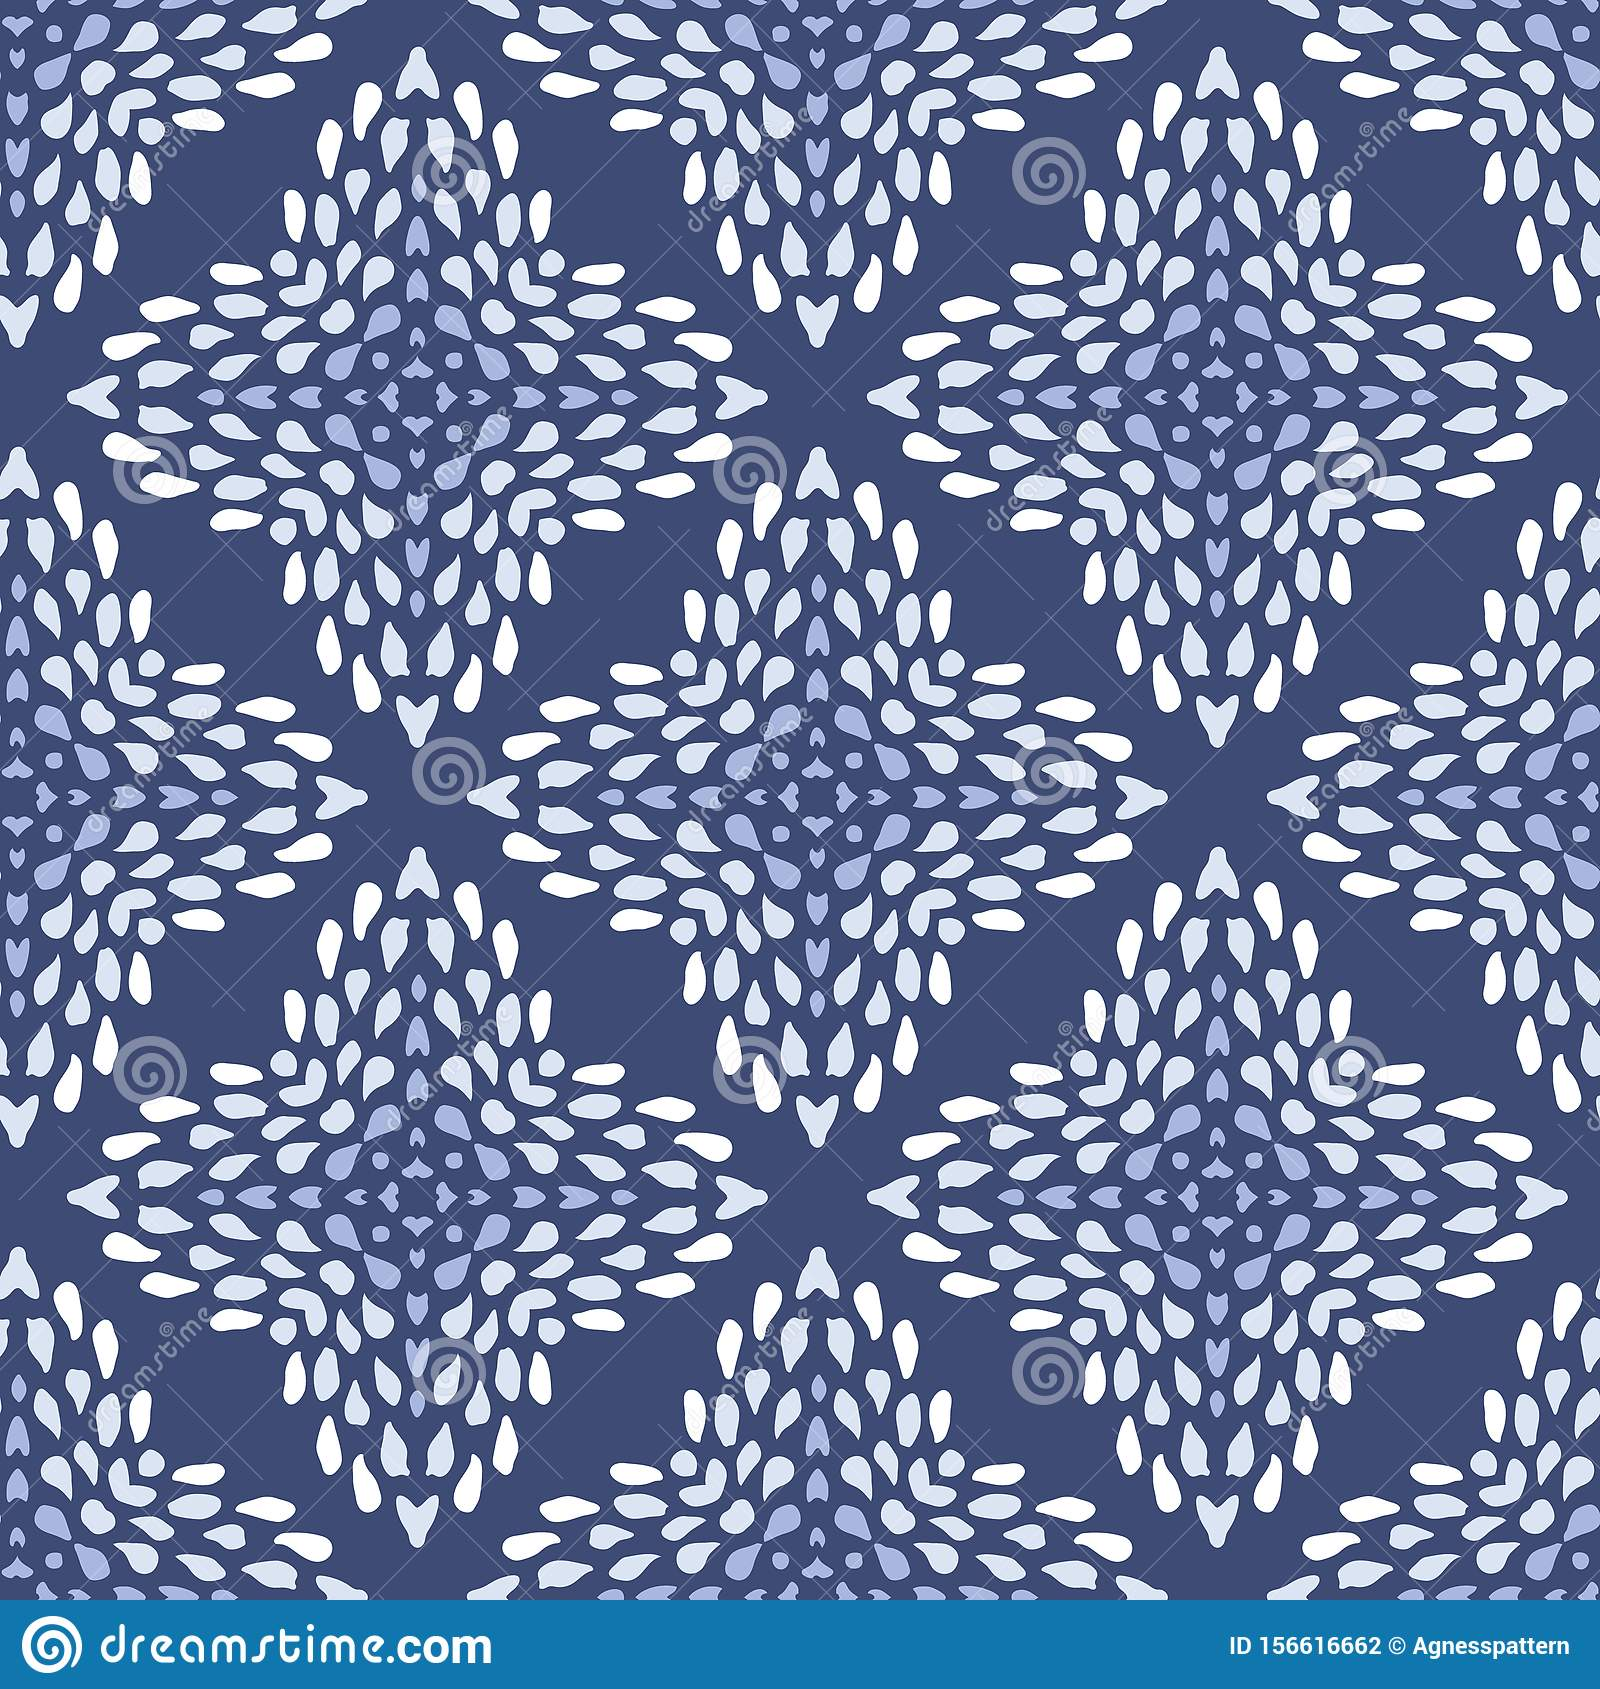 Vector Seamless Indigo Batik Pattern With Irregular Dots